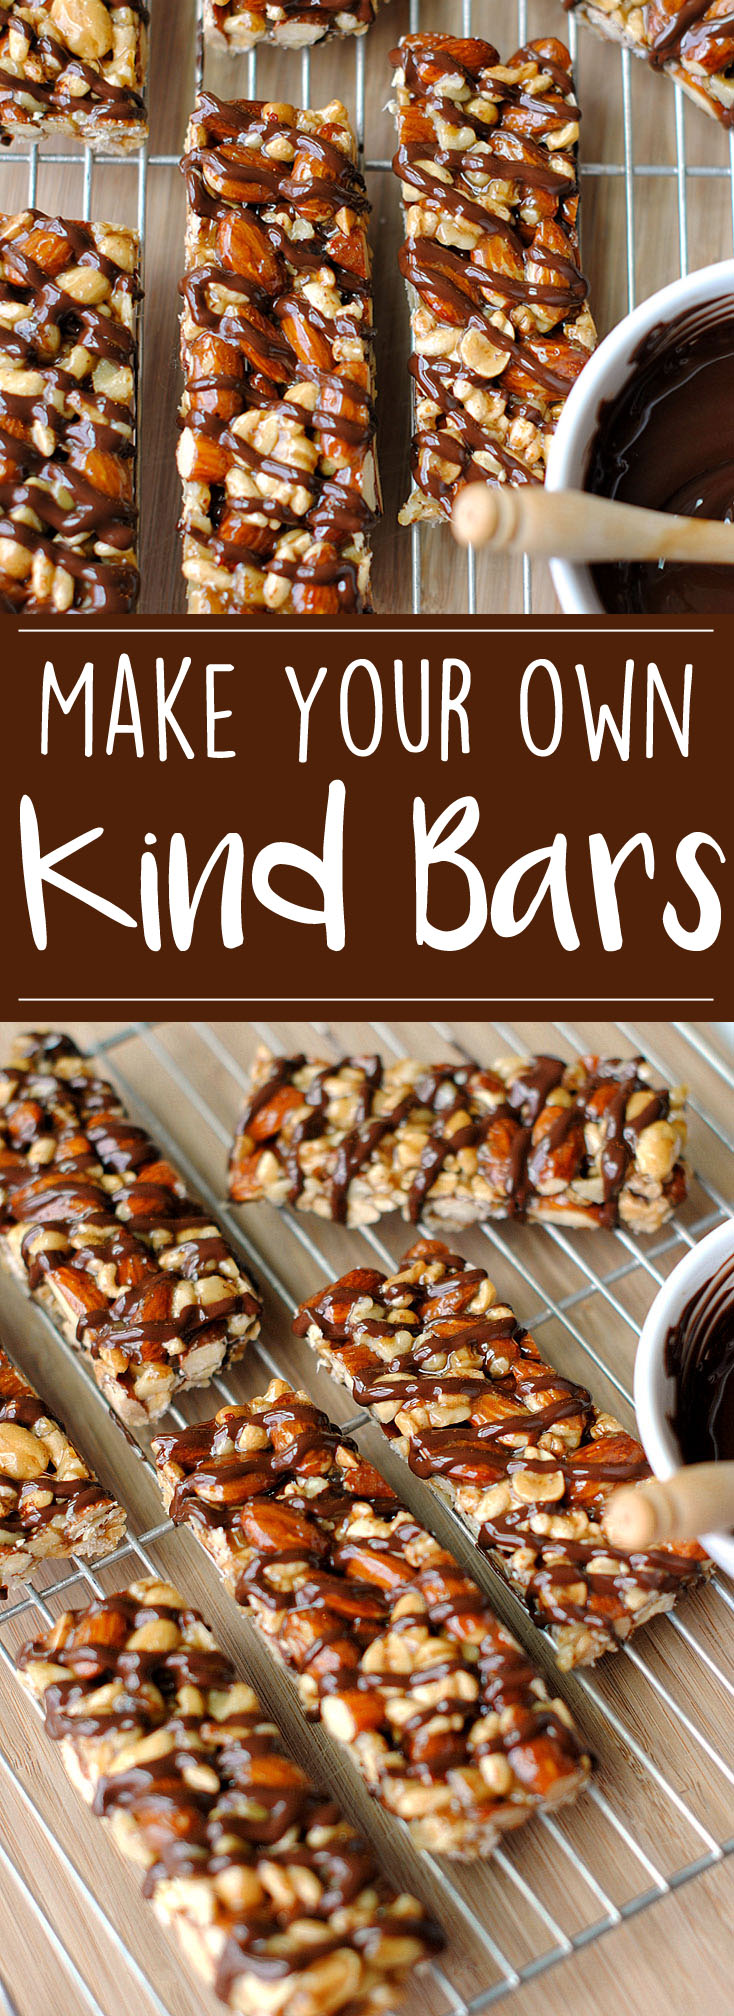 Now you can make your OWN delicious Dark Chocolate and Sea Salt KIND Bars at home that are healthier and much tastier with zero baking required!